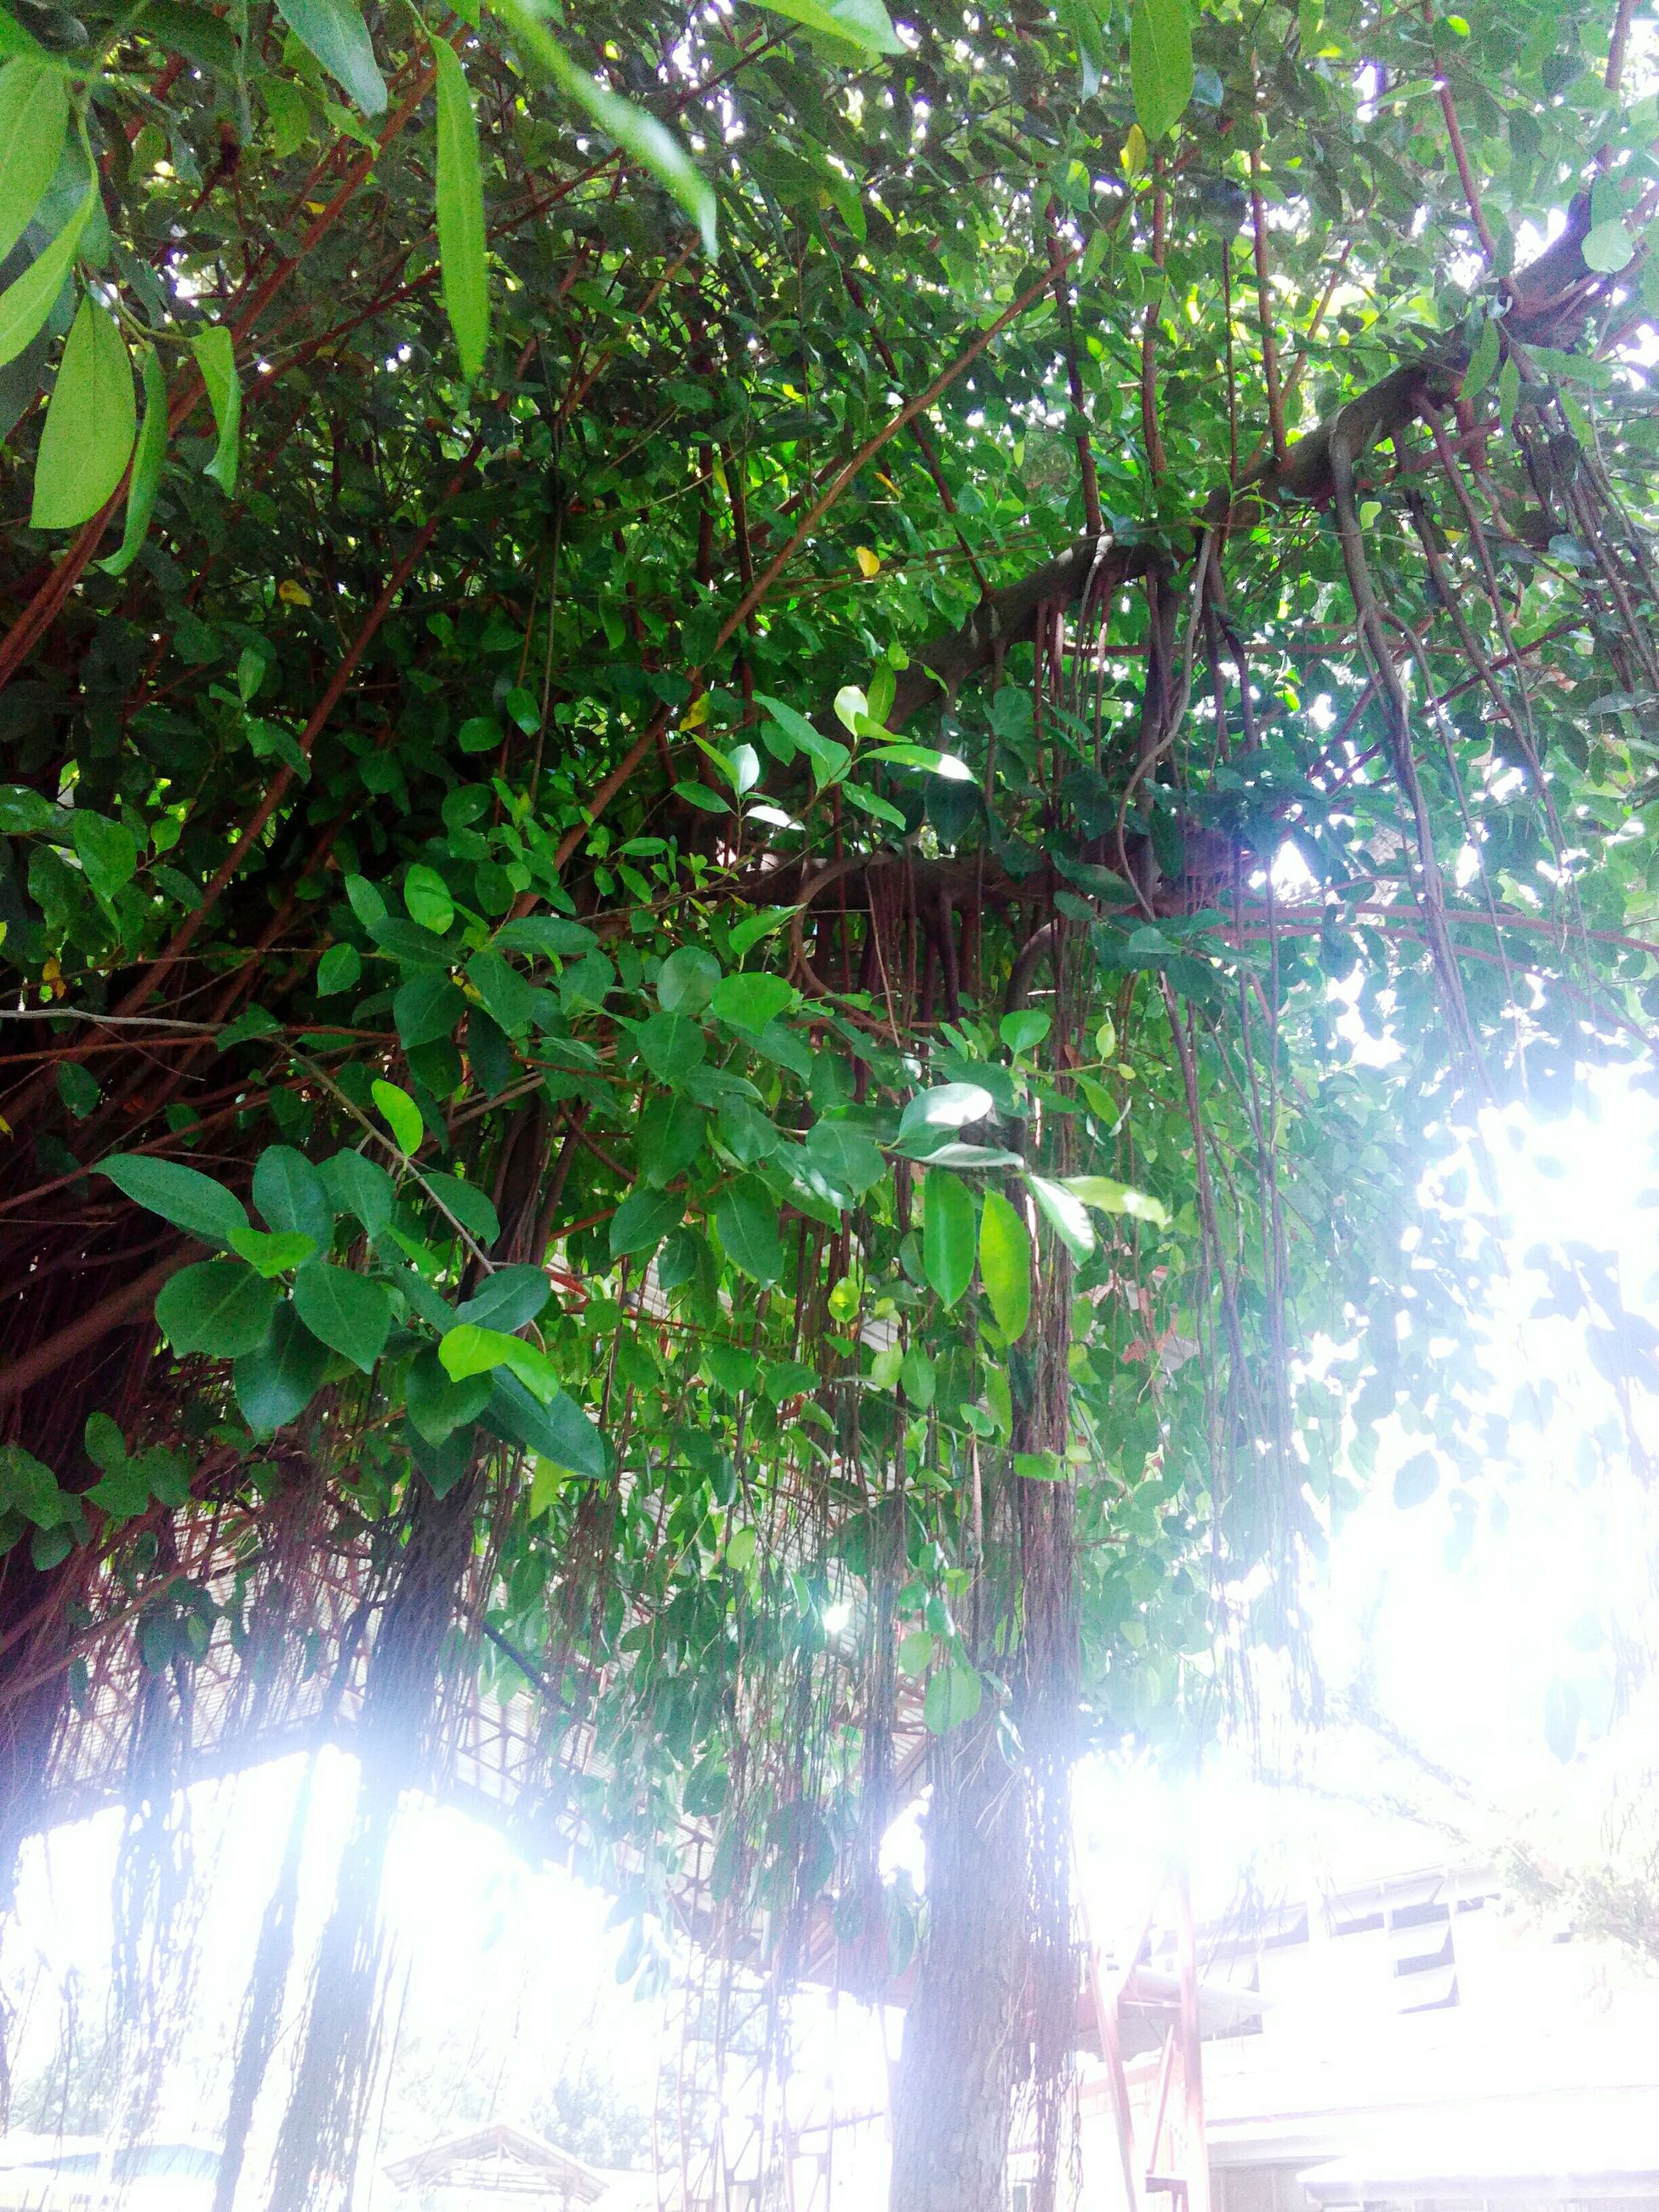 tree, growth, nature, branch, leaf, green color, plant, no people, beauty in nature, day, low angle view, outdoors, forest, foliage, freshness